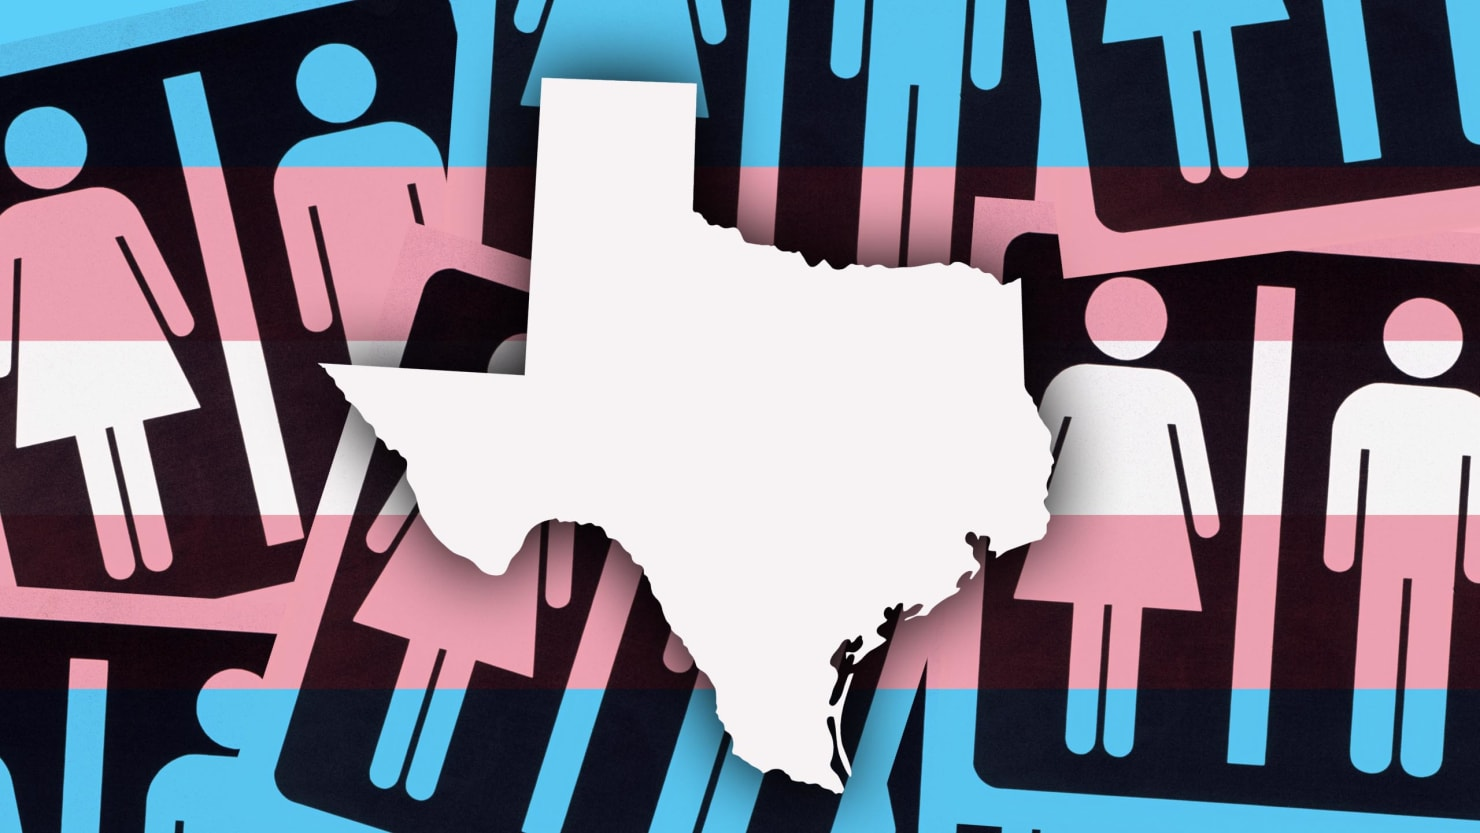 Texas' Anti-Trans 'Bathroom Bill' Died Last Year. It May Come Back to Life.